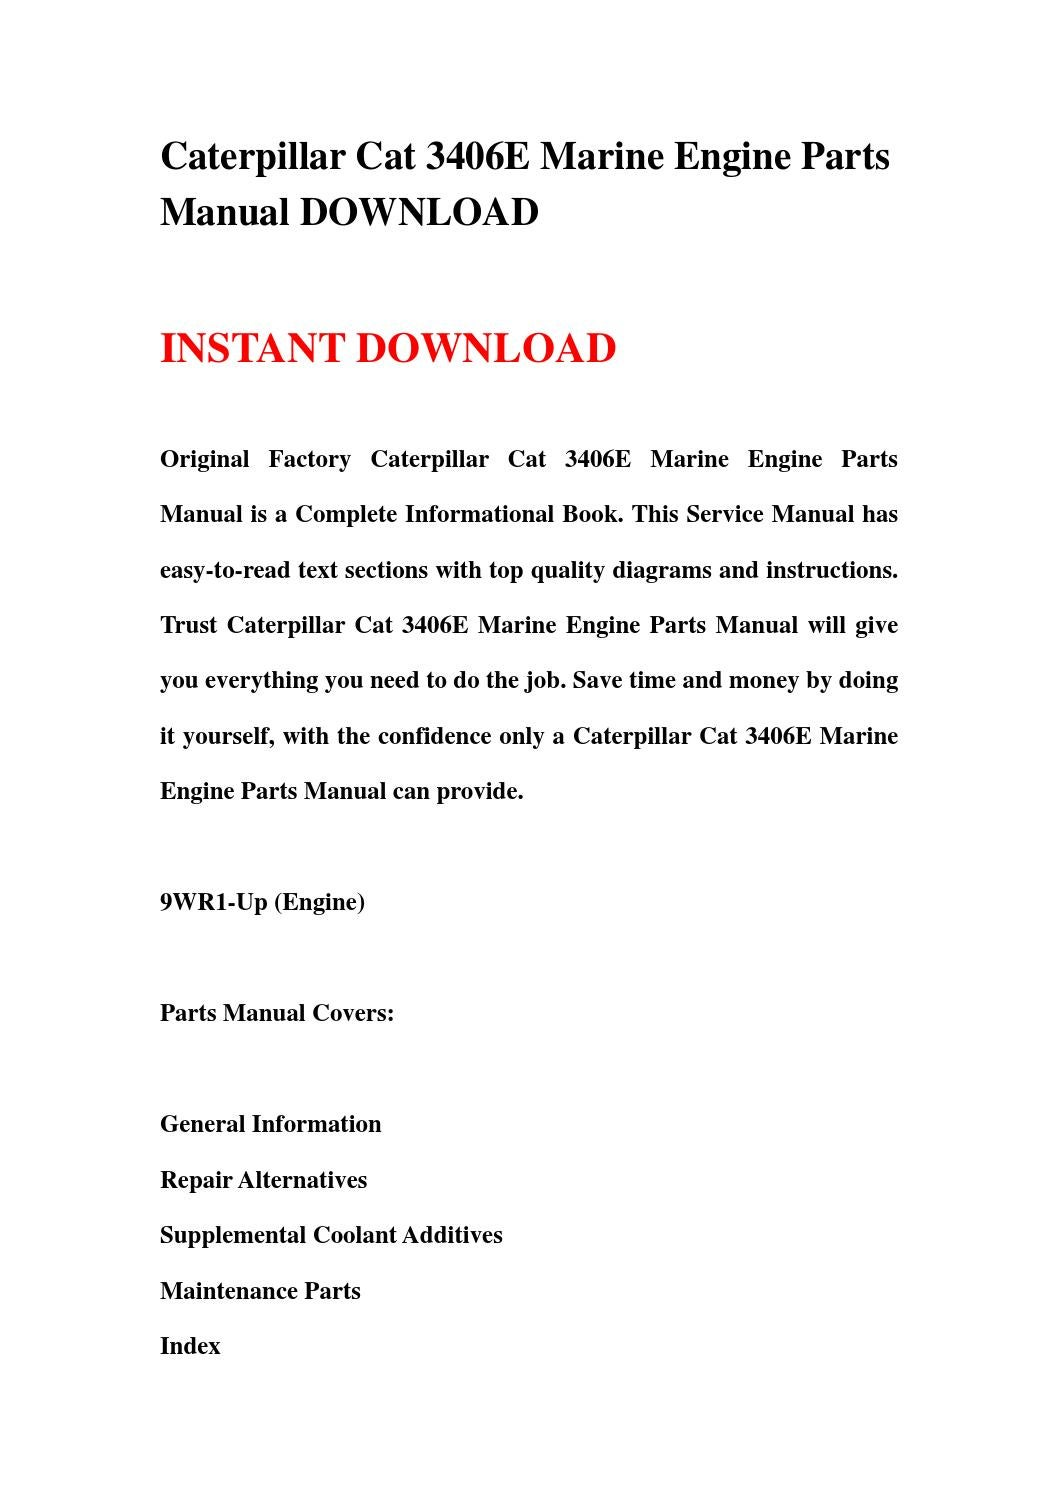 Caterpillar cat 3406e marine engine parts manual download by sjefhsnen -  issuu